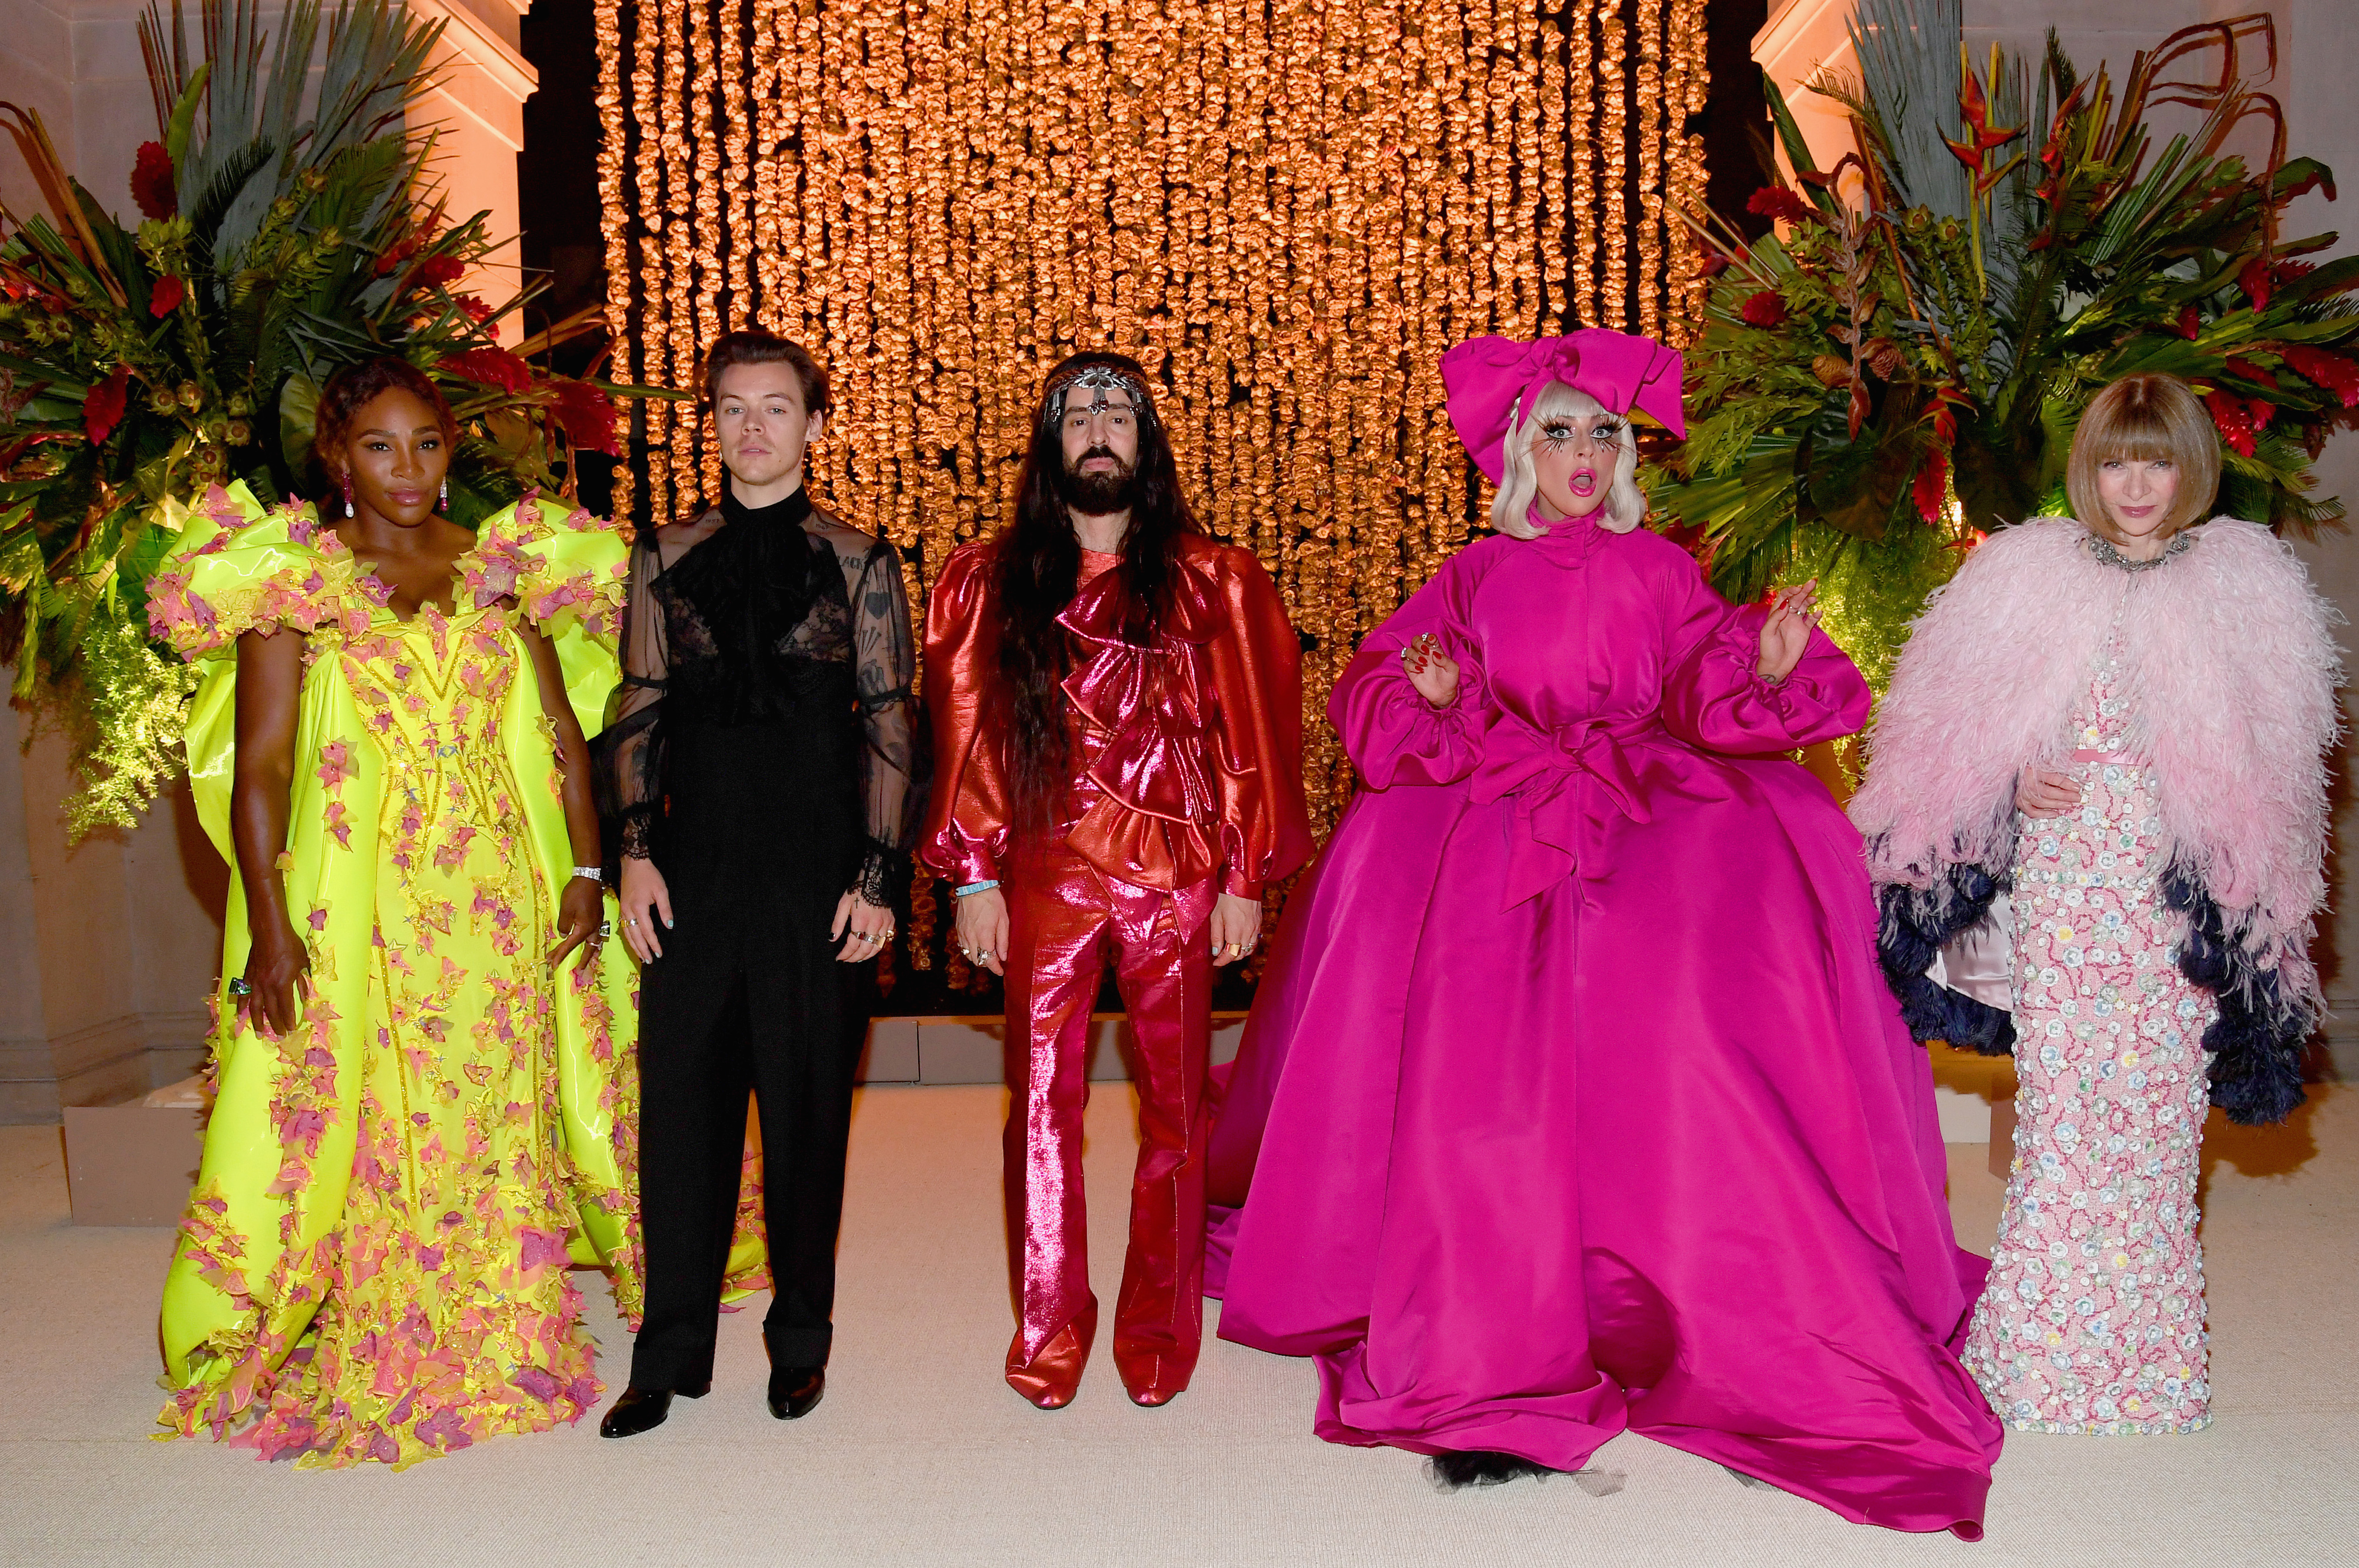 NEW YORK, NEW YORK - MAY 06:  (L-R) Co-hosts Harry Styles, Serena Williams, Alessandro Michele, Lady Gaga and Anna Wintour attend The 2019 Met Gala Celebrating Camp: Notes on Fashion at Metropolitan Museum of Art on May 06, 2019 in New York City.  (Photo by Kevin Mazur/MG19/Getty Images for The Met Museum/Vogue)